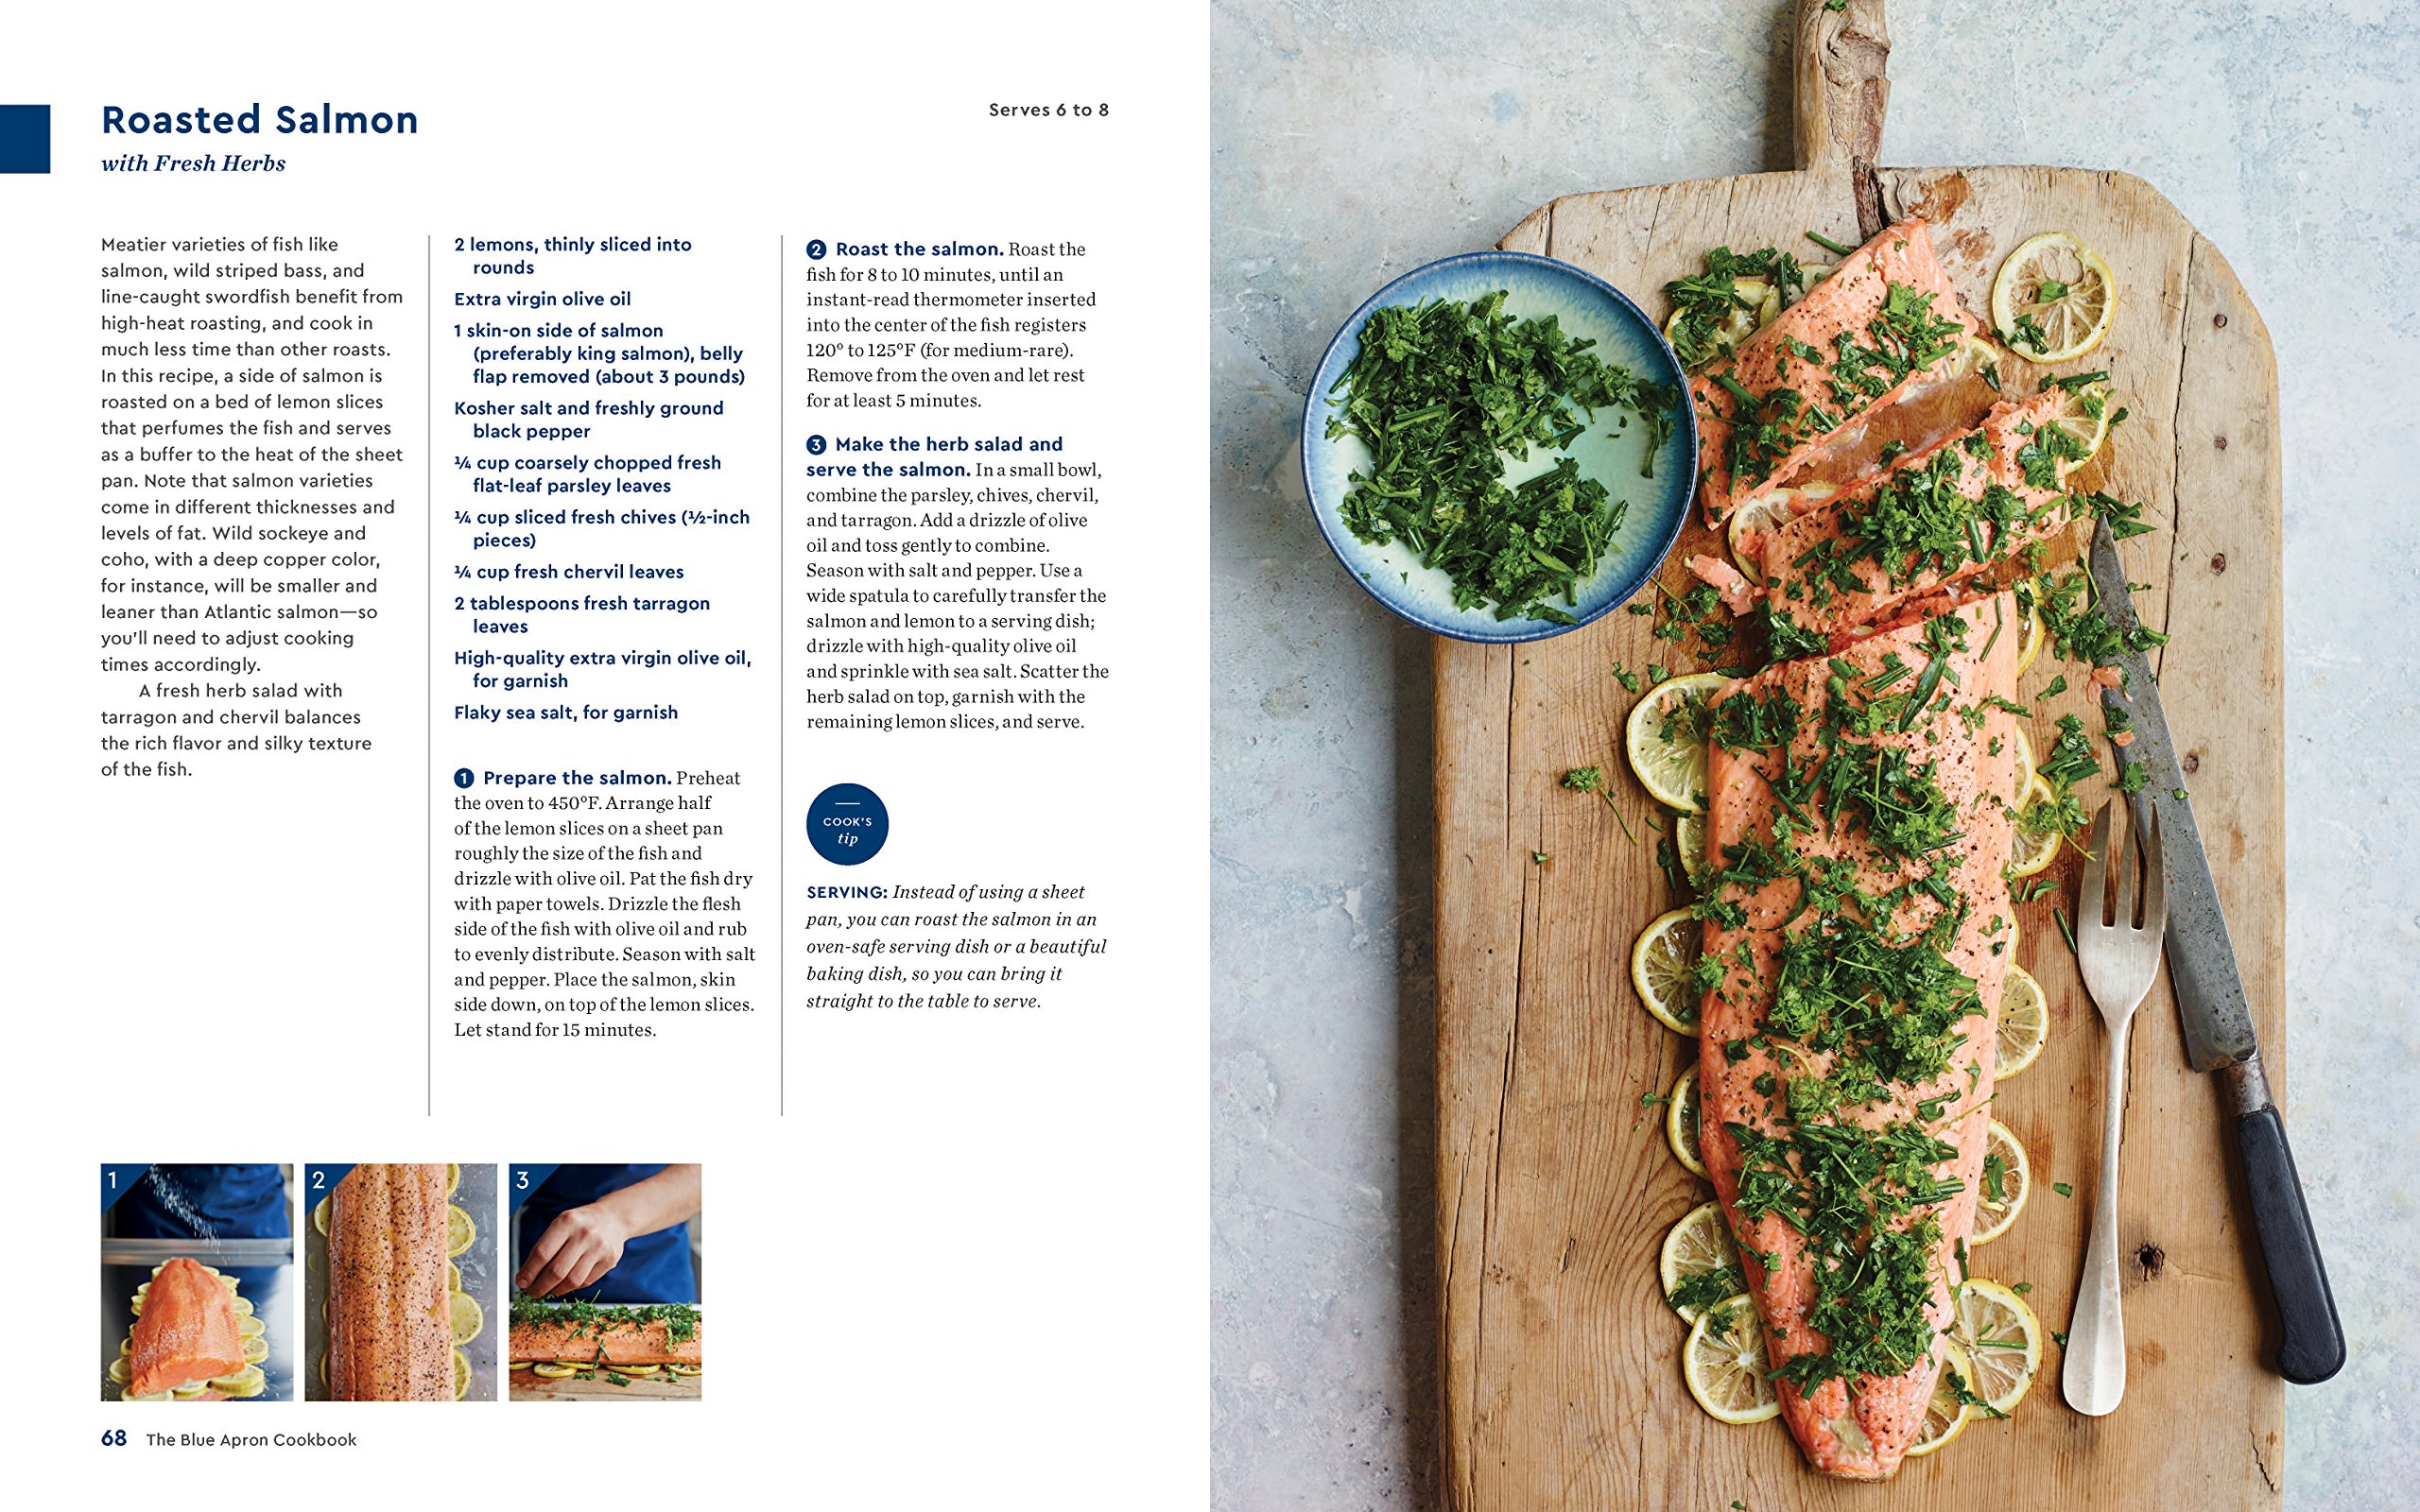 The blue apron cookbook 165 essential recipes and lessons for a the blue apron cookbook 165 essential recipes and lessons for a lifetime of home cooking blue apron culinary team 9780062562760 amazon books forumfinder Image collections